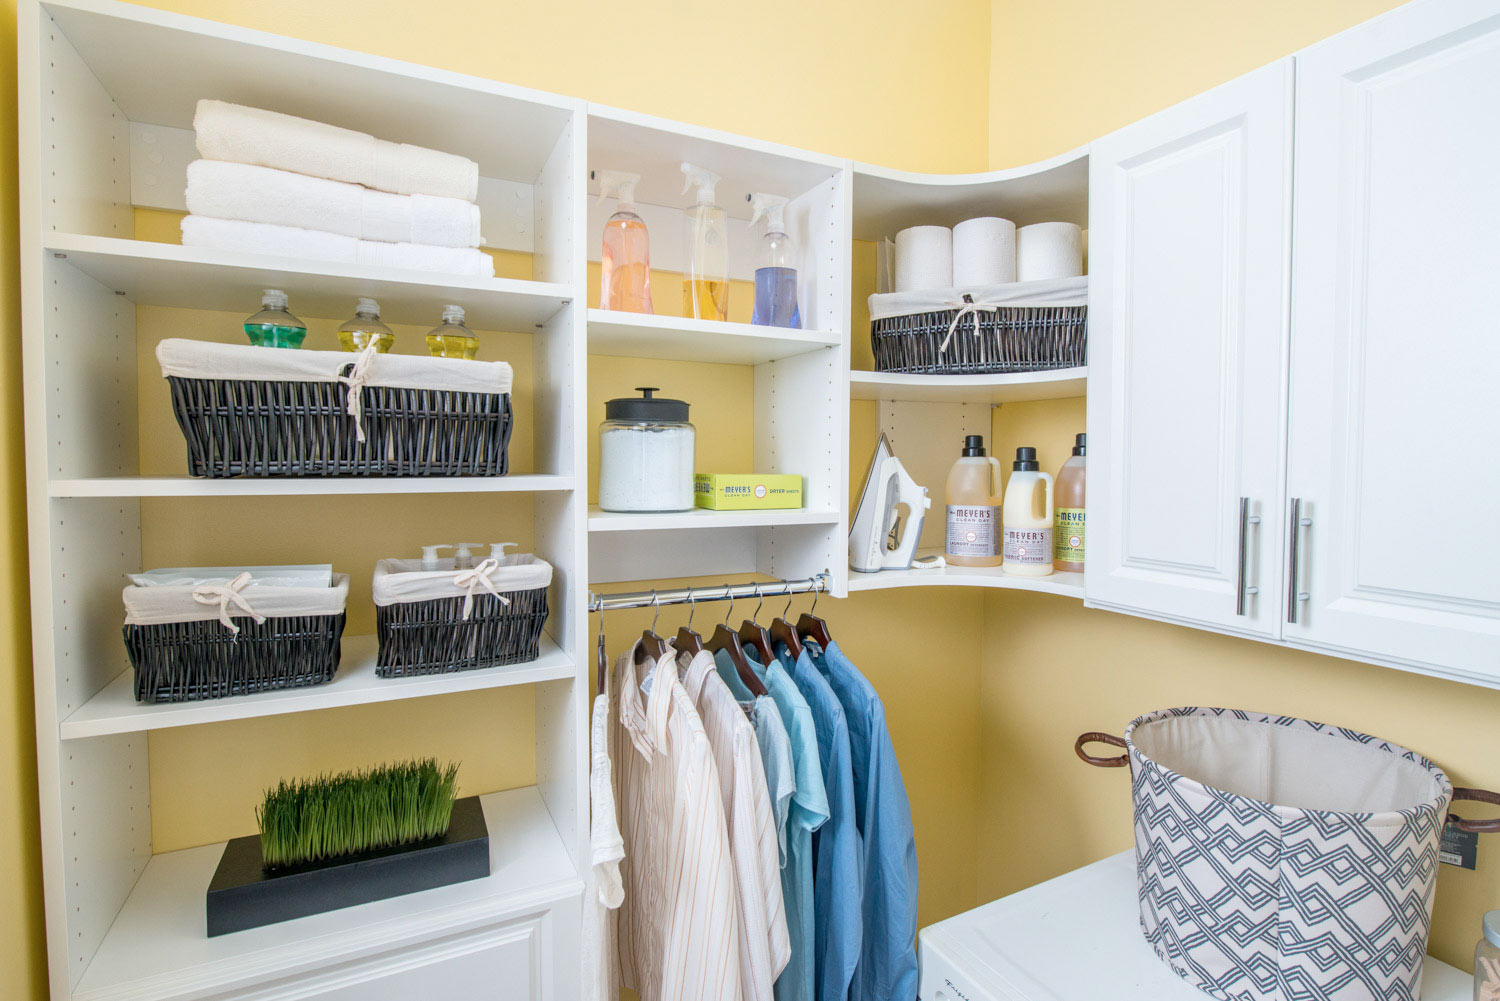 transform art offices of storage closets the wall closet reachin built in custom home